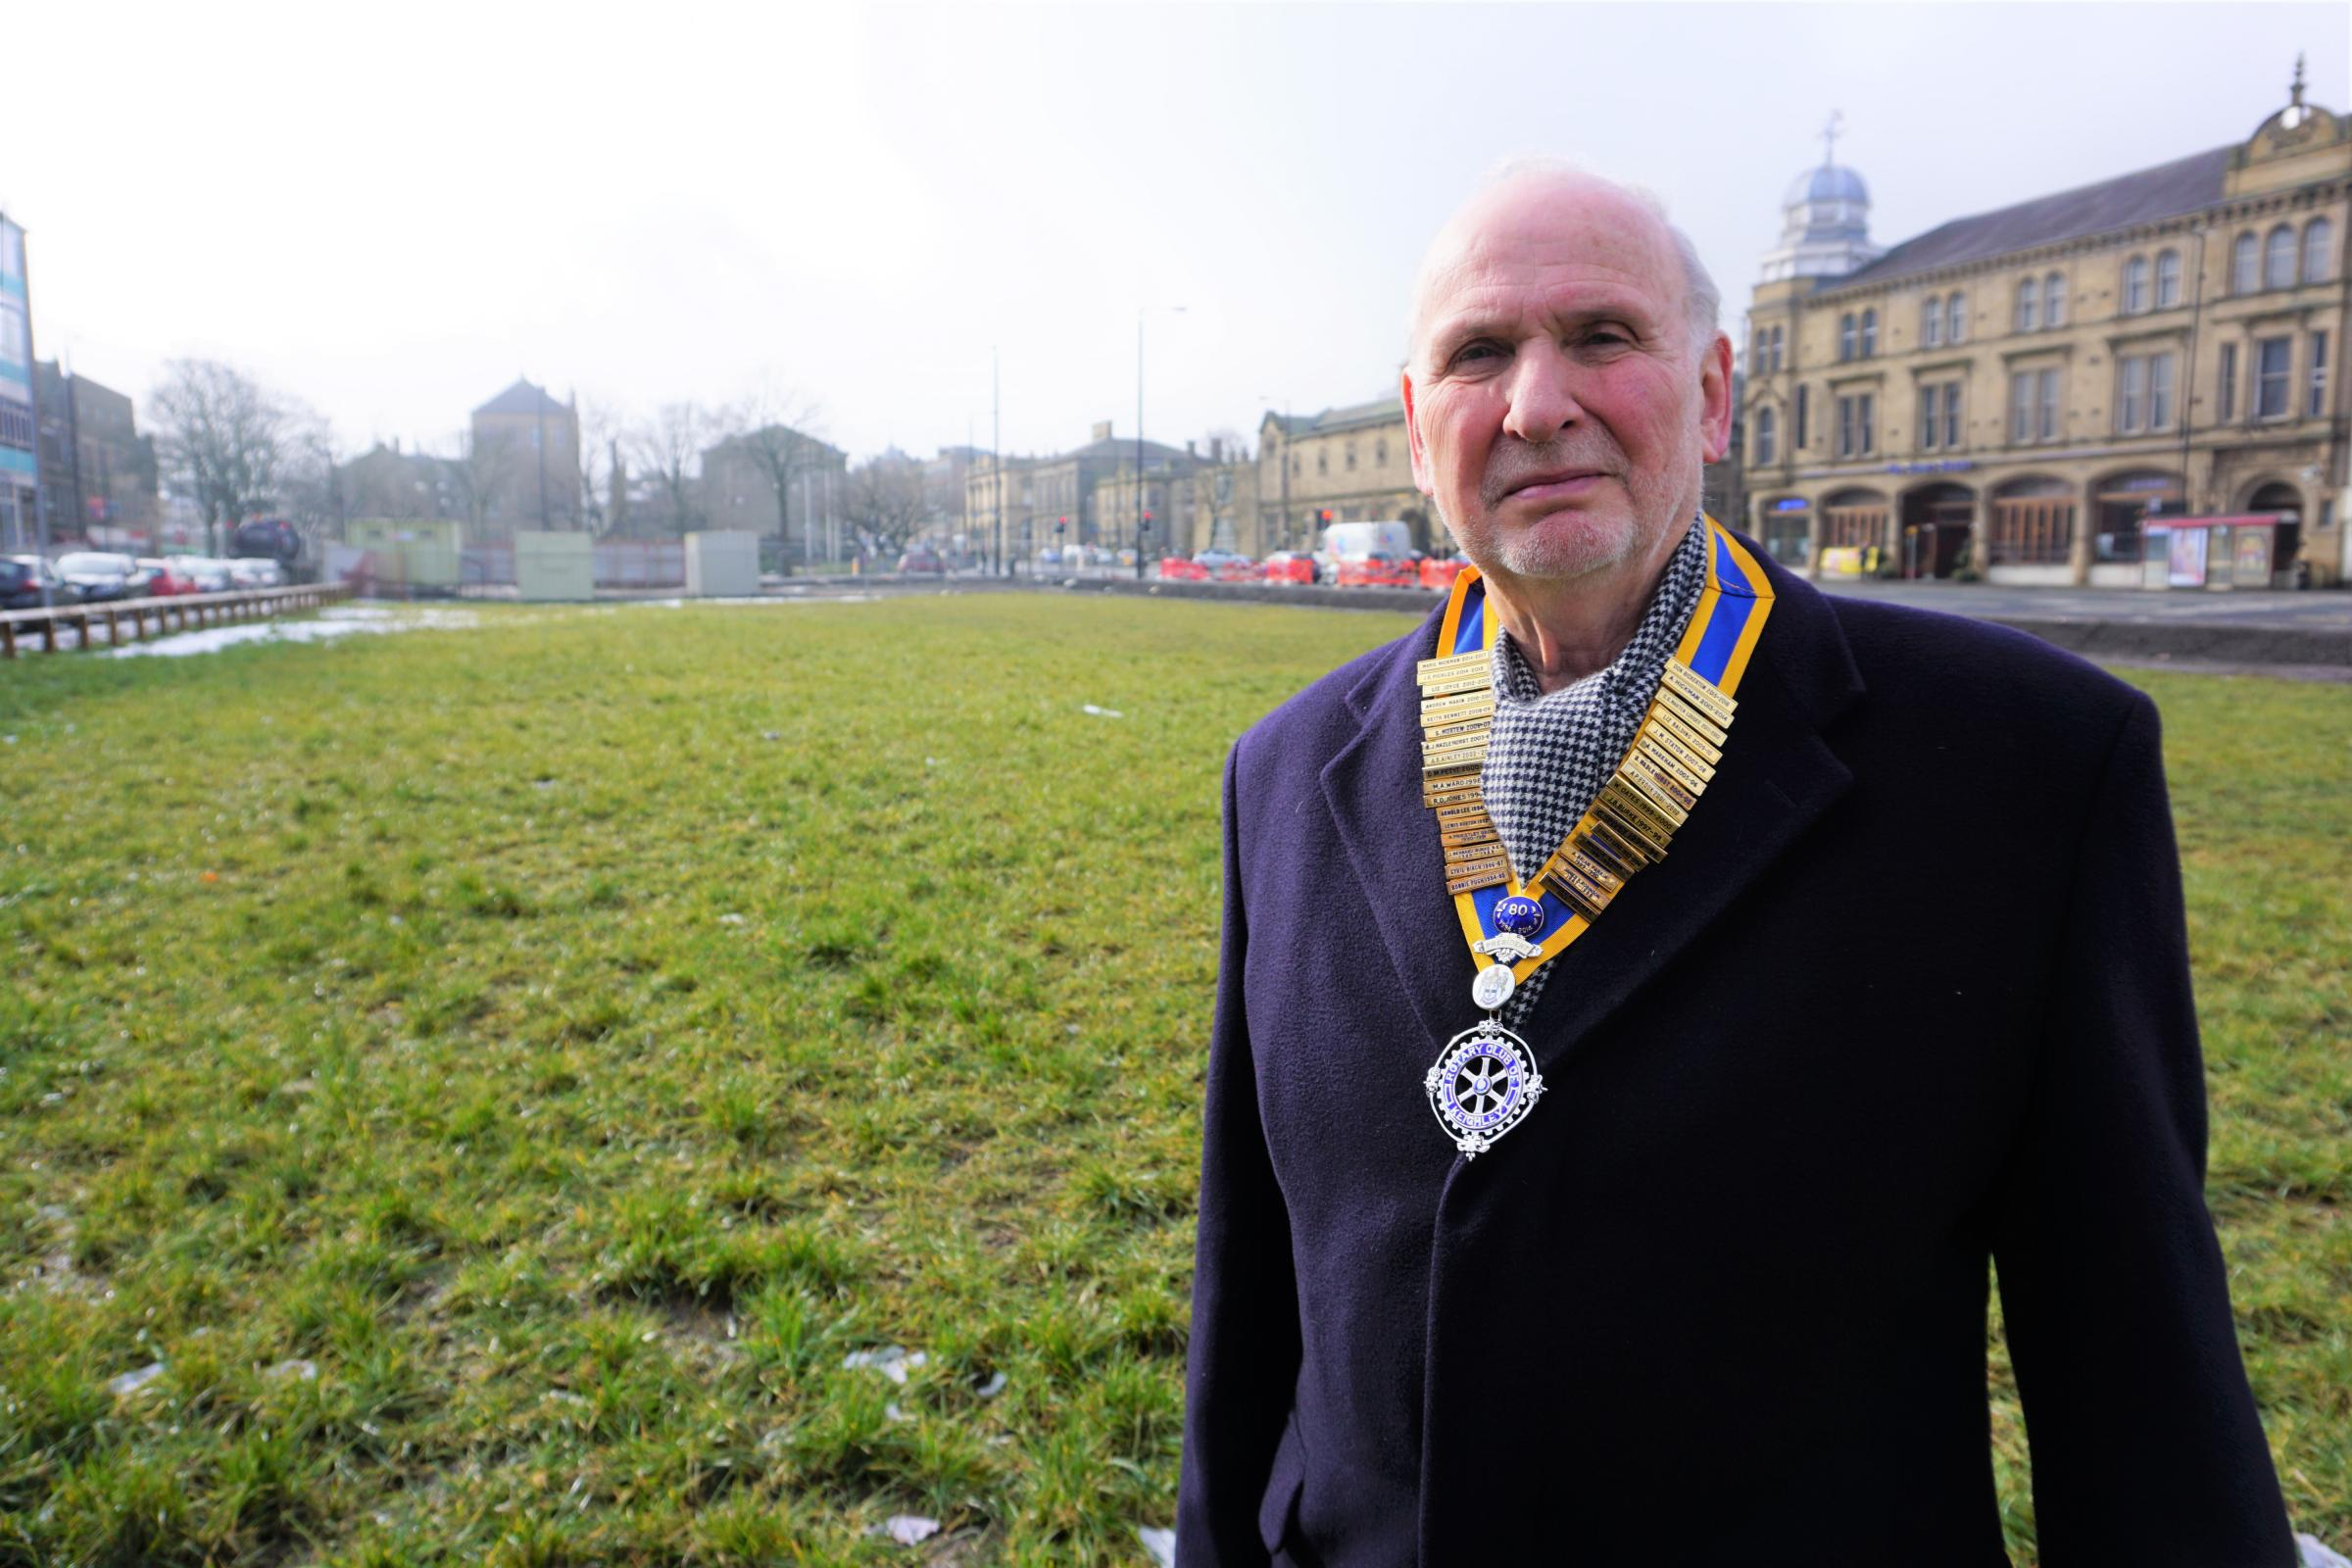 Chris Pickles, president of Keighley Rotary Club, at the site